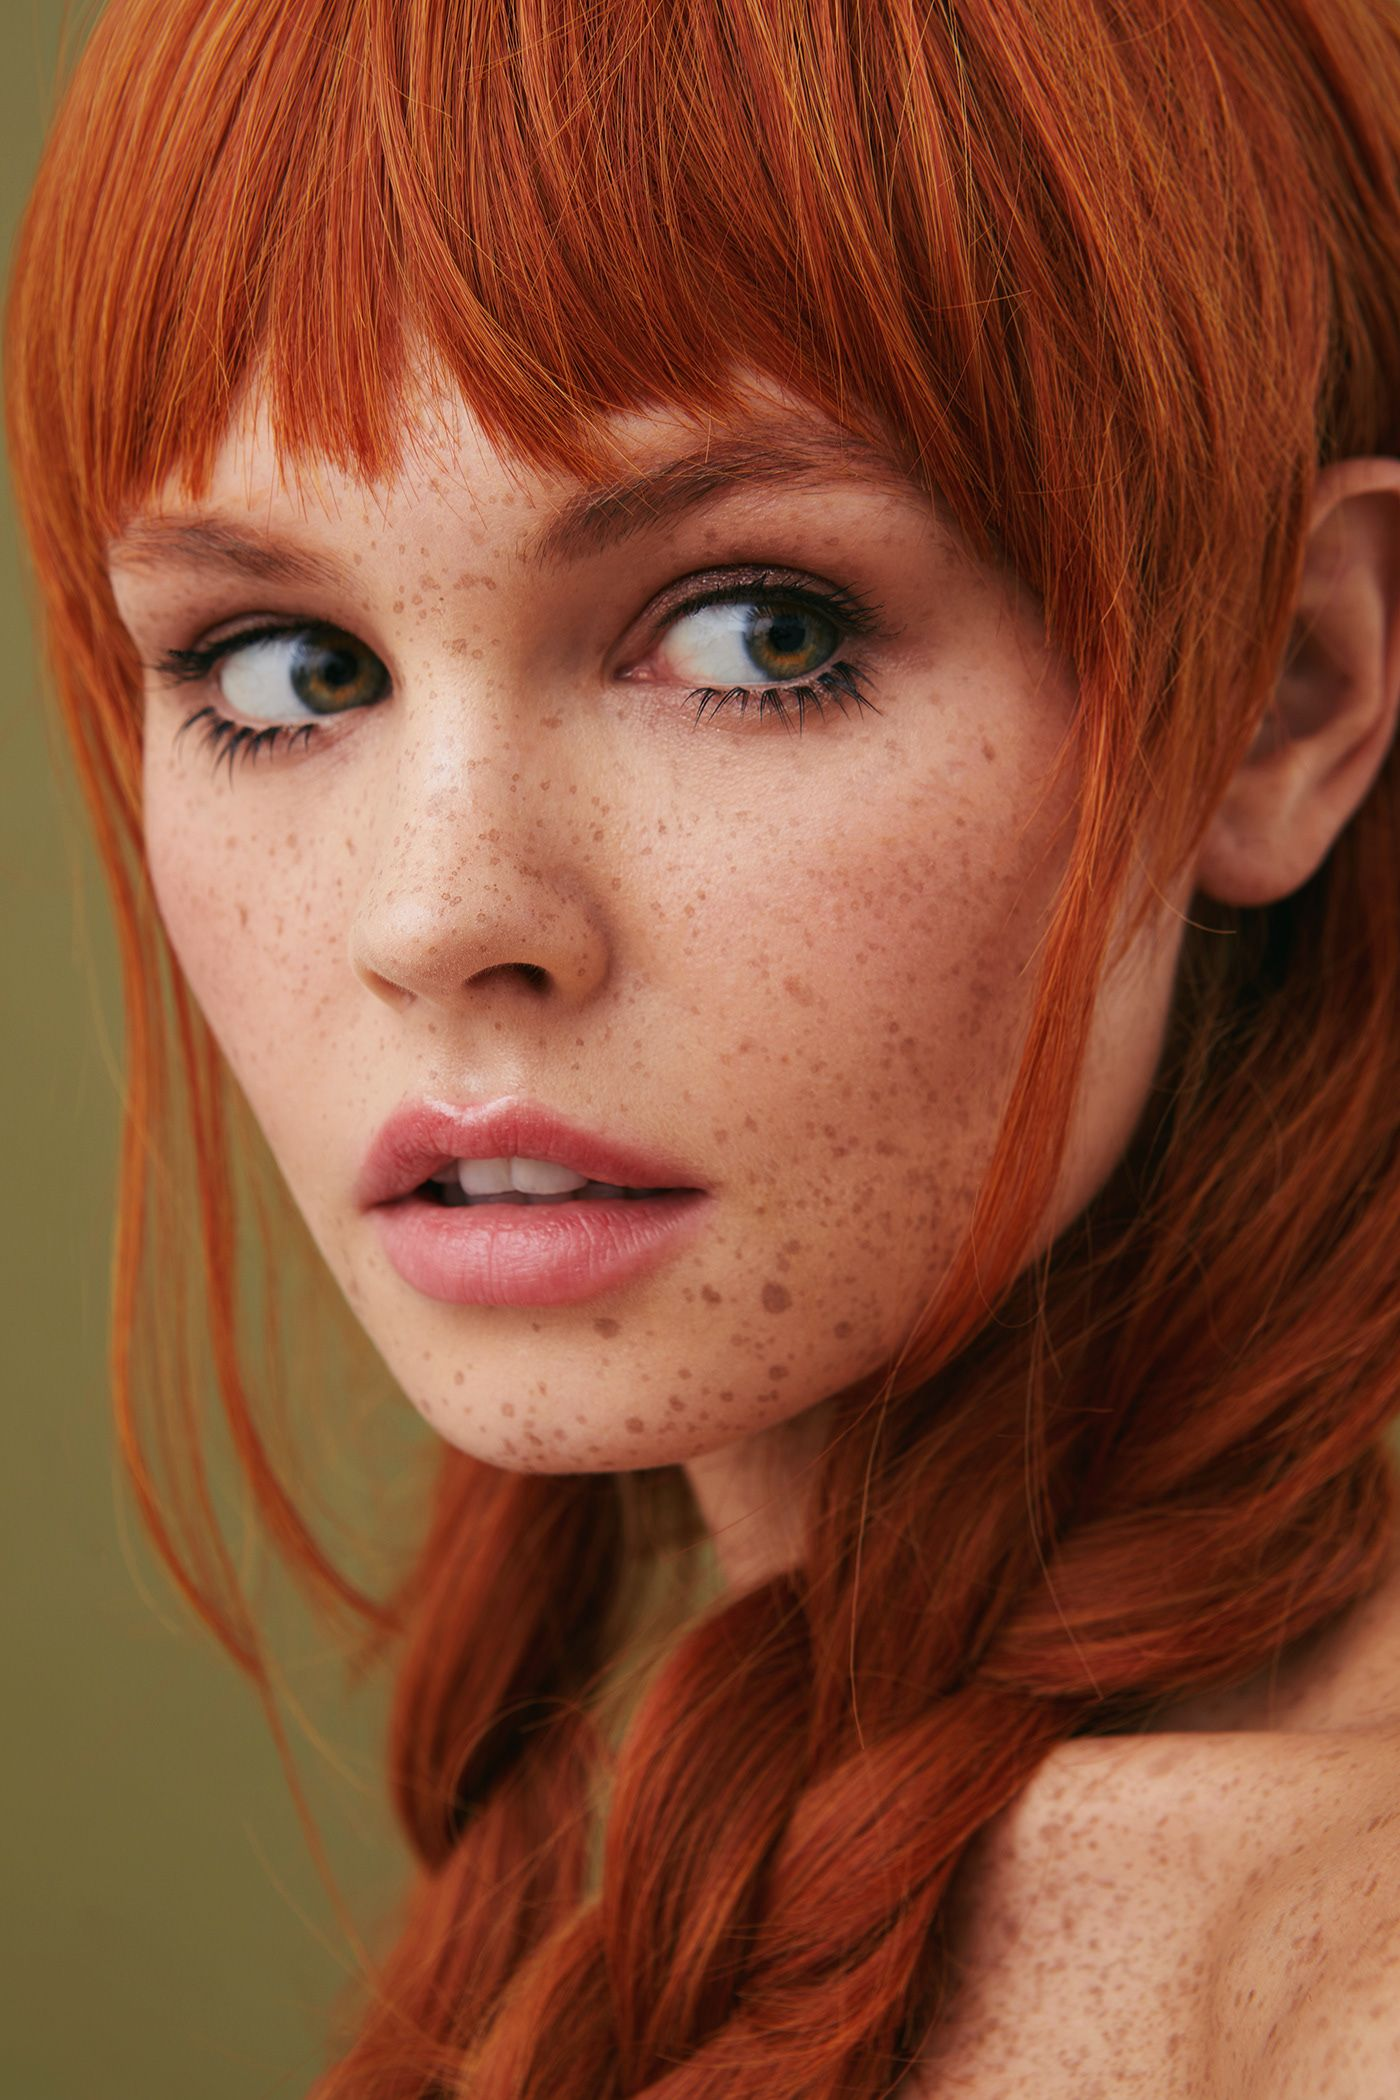 There Is Just Something About A Girl With Freckles